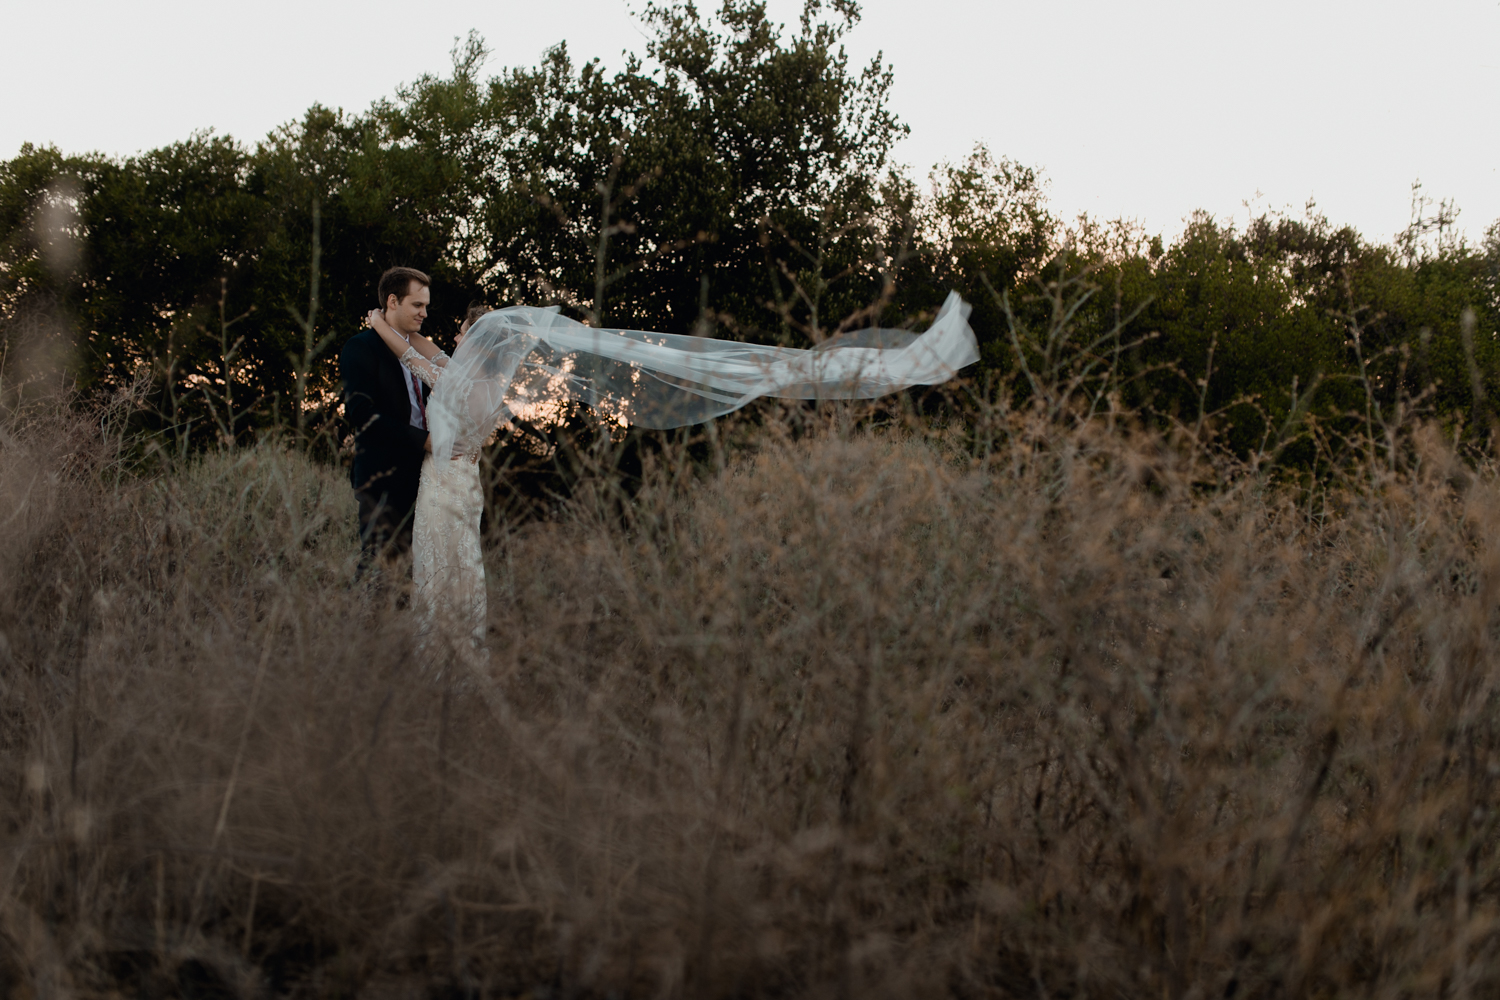 heisvisual-wedding-photographers-documentary-stellenbosch-south-africa001-7.jpg